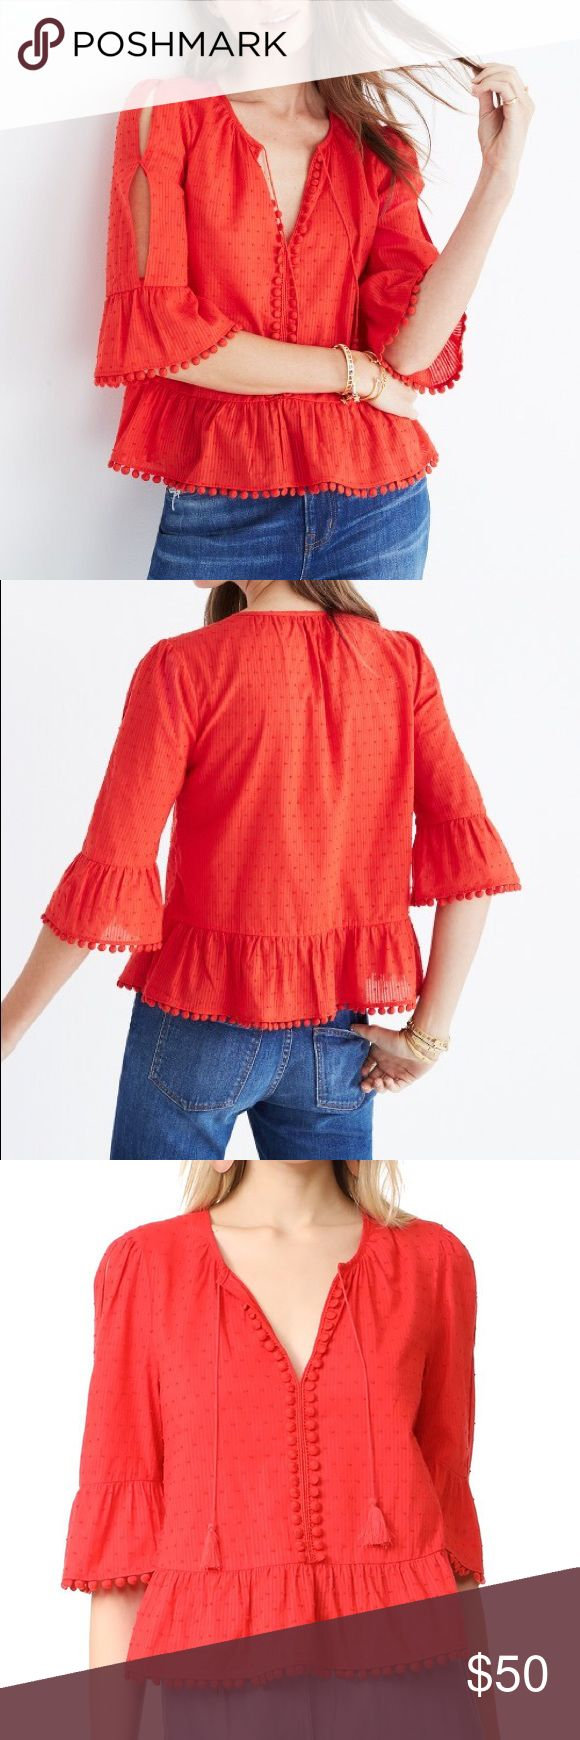 Madewell Red Peekaboo Pom Pom Tie Front Tassel Top Bundle & Save No Trades Brand New without Tags 3/4 Sleeve Blouse Madewell Tops Blouses